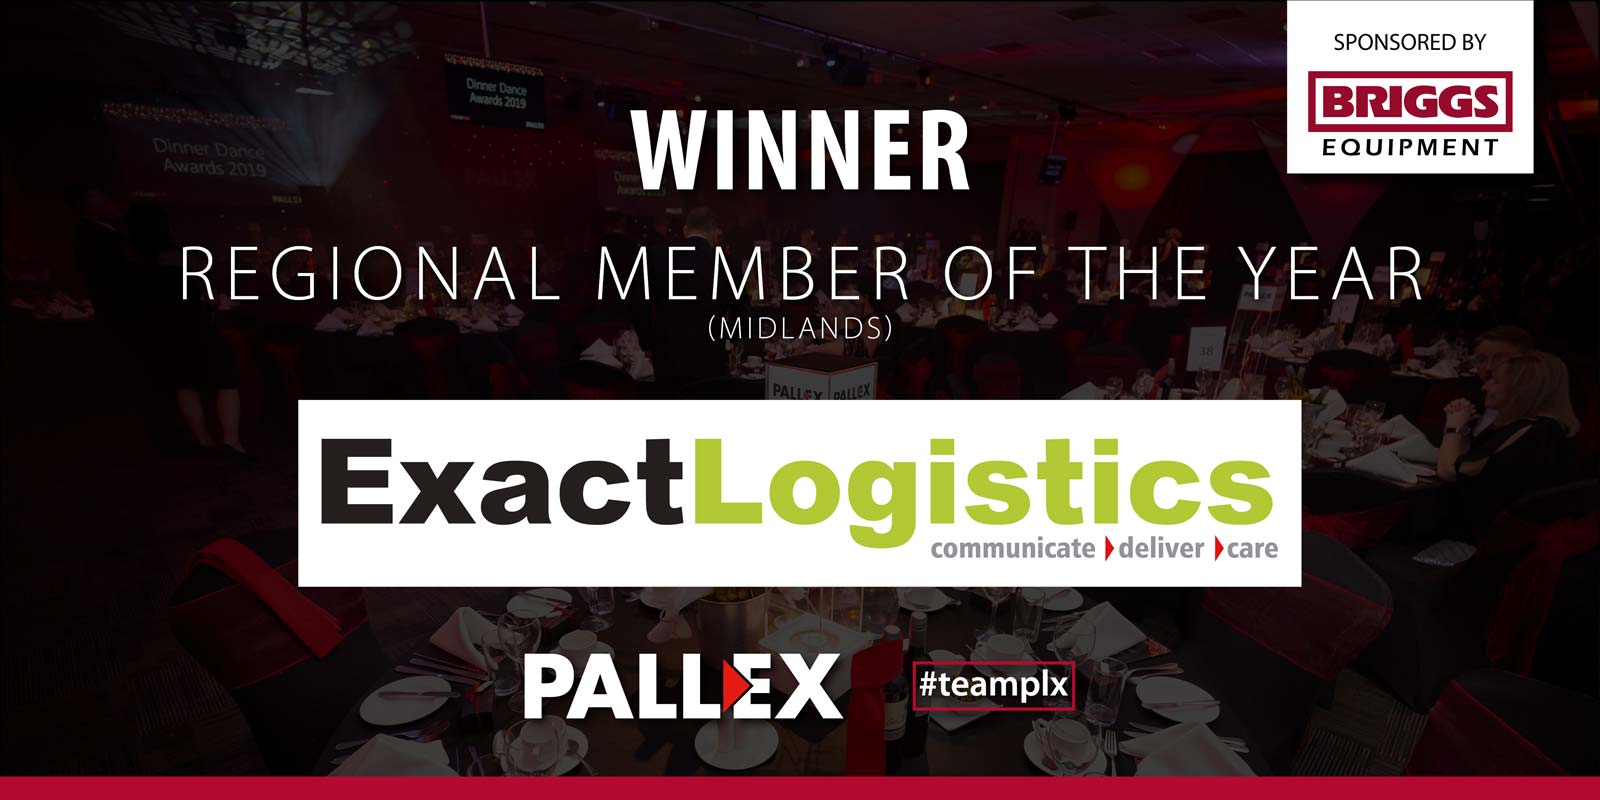 Pallex Regional Member of the Year - Exact Logistics